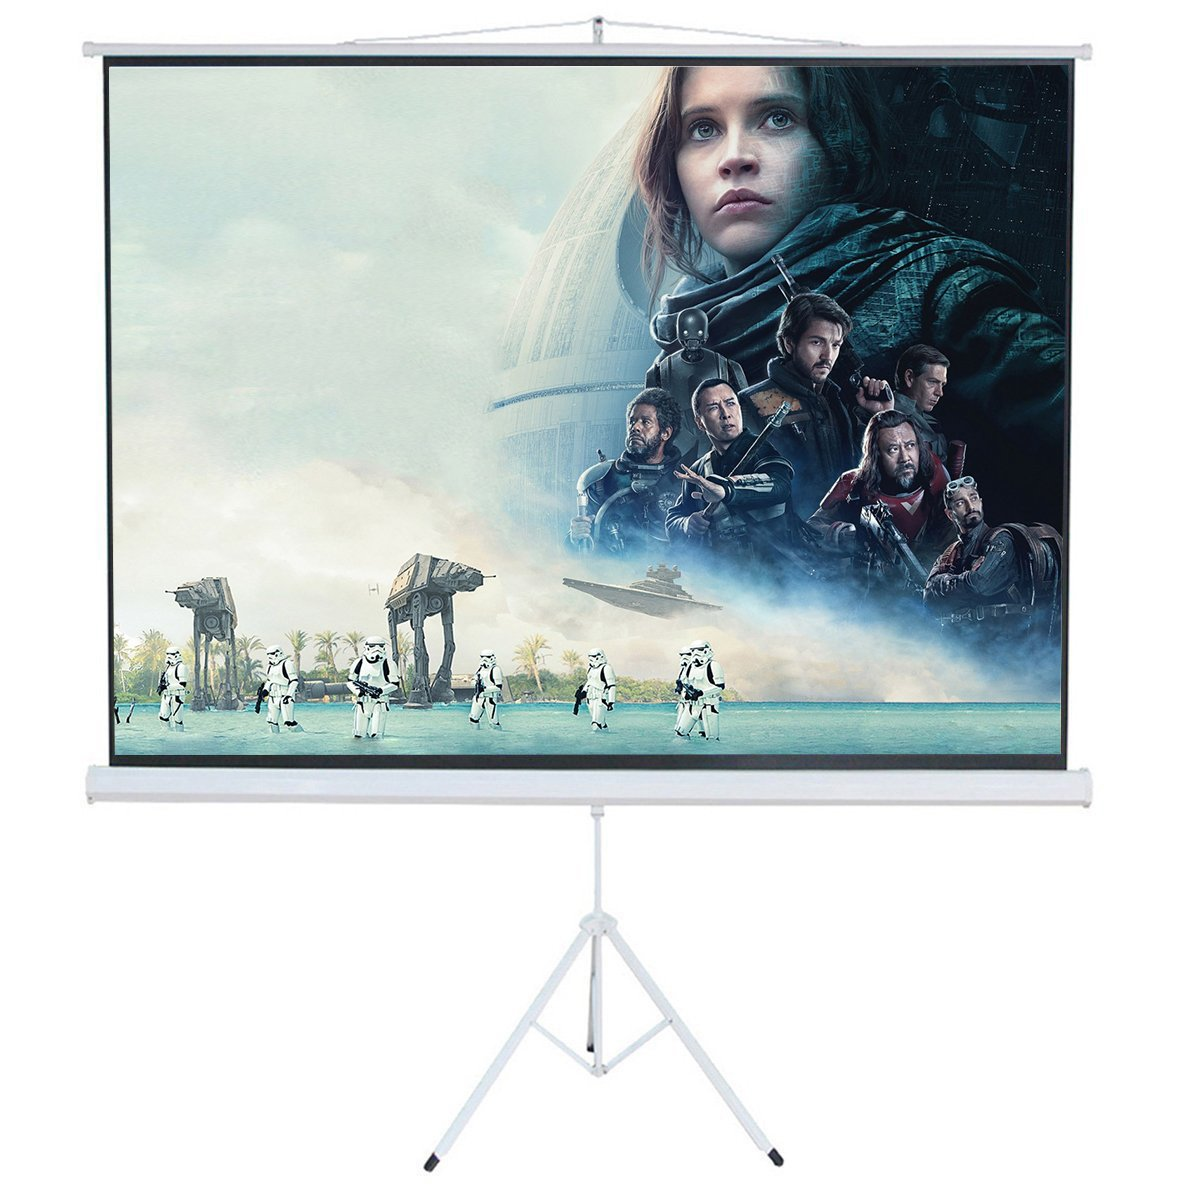 Cloud Mountain 120'' 4:3 Pull Up Tripod Projection Screen Portable Projector Projection Screen Matte White